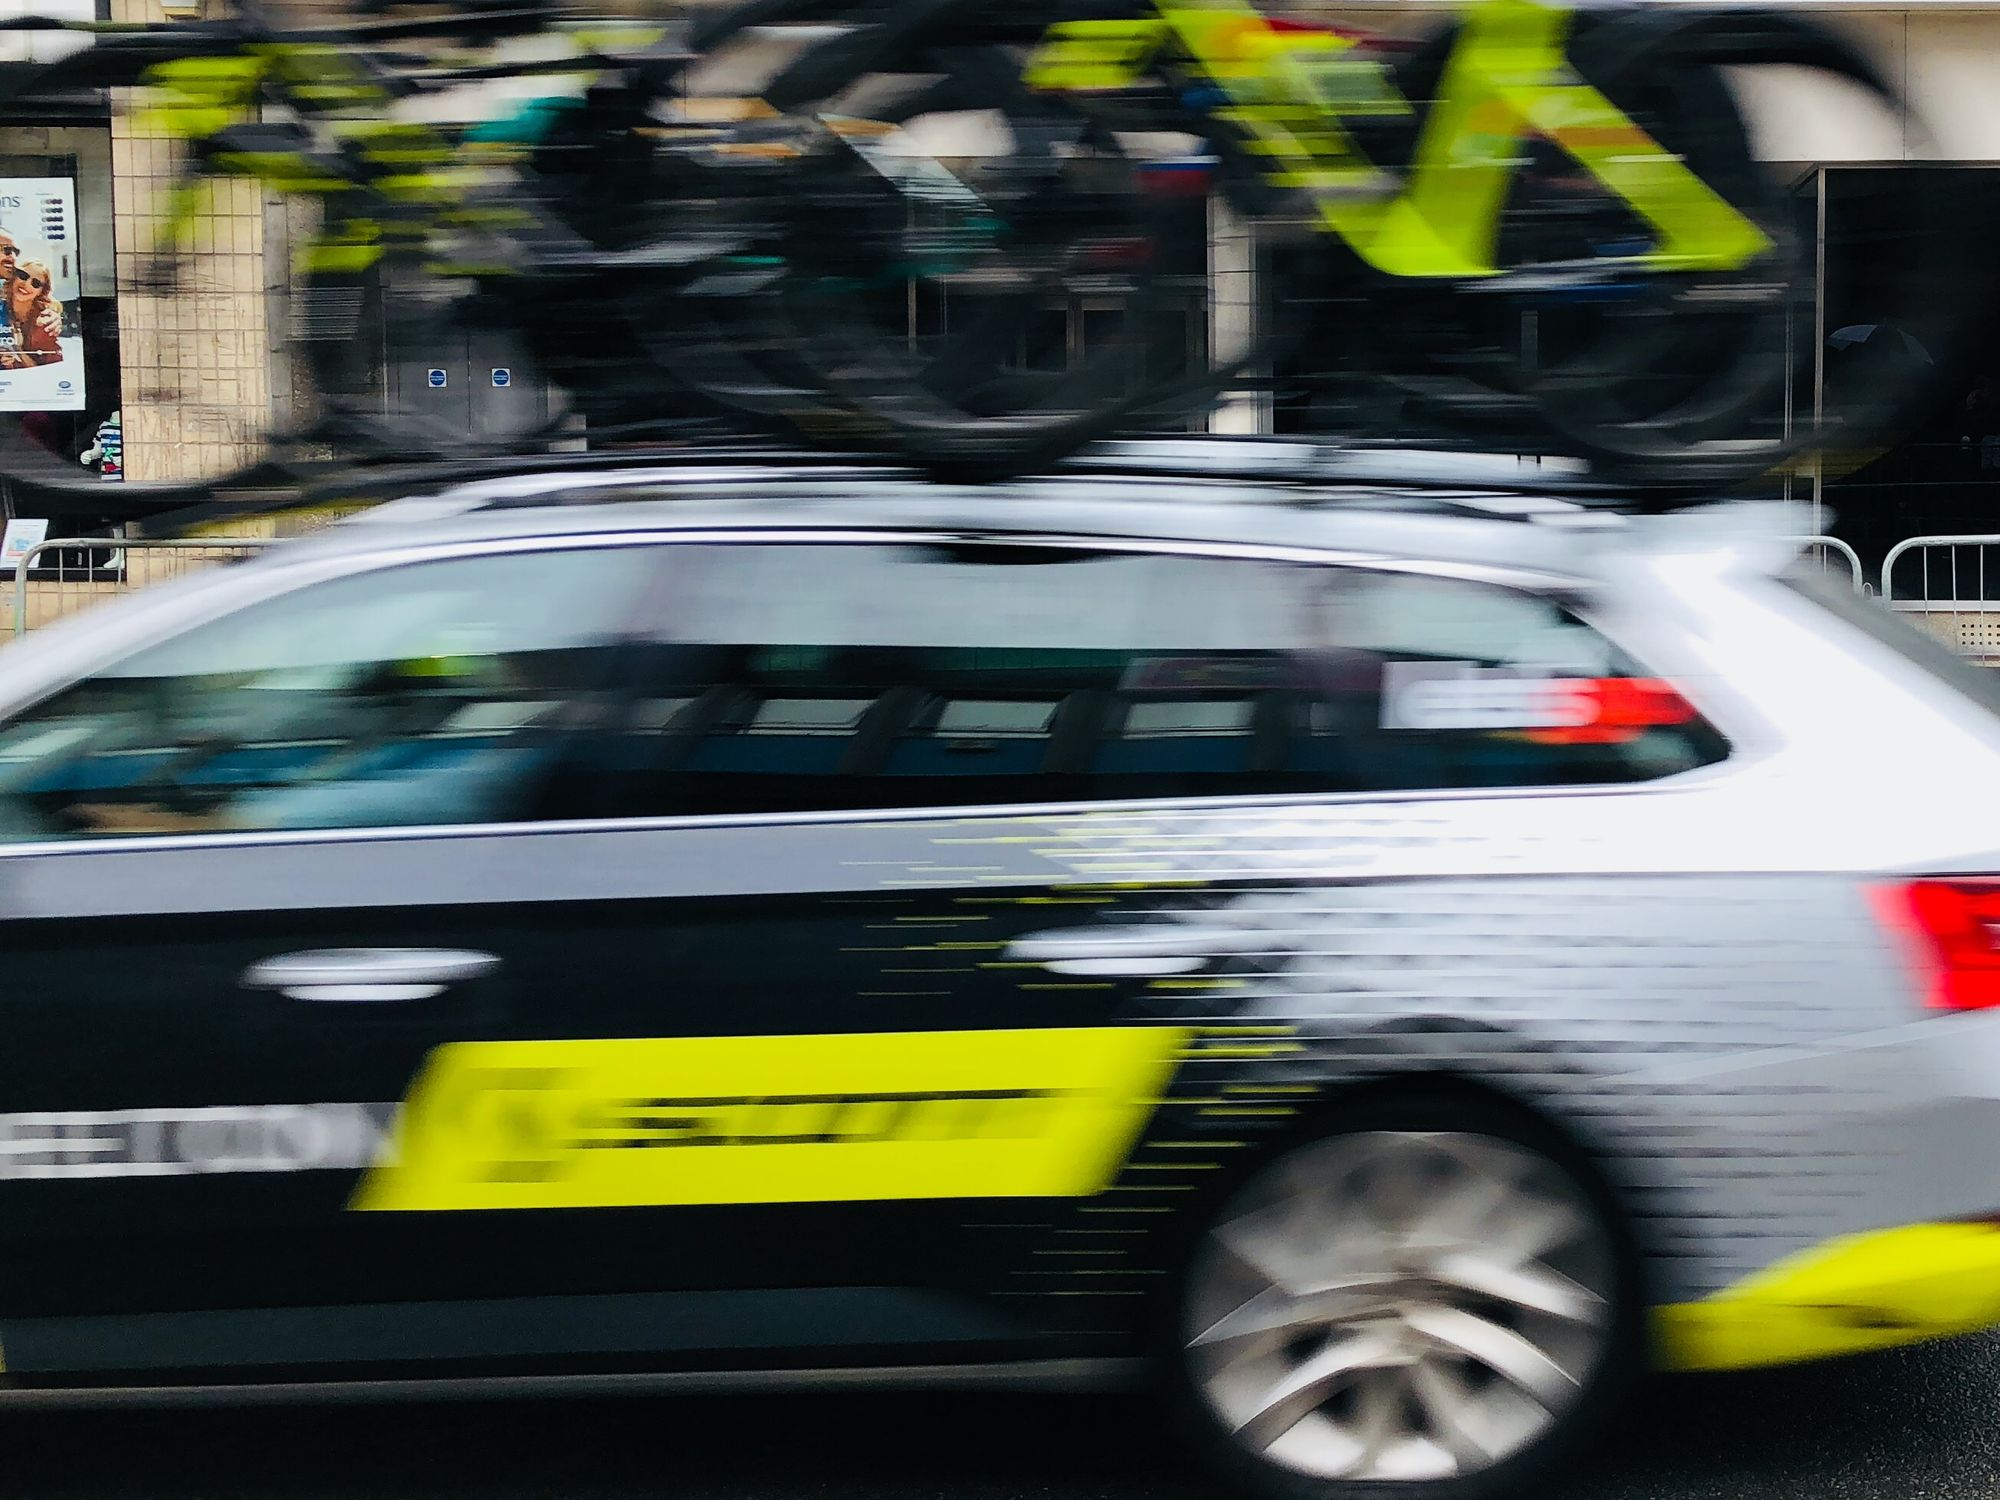 The problem of bike thefts at the Tour de France